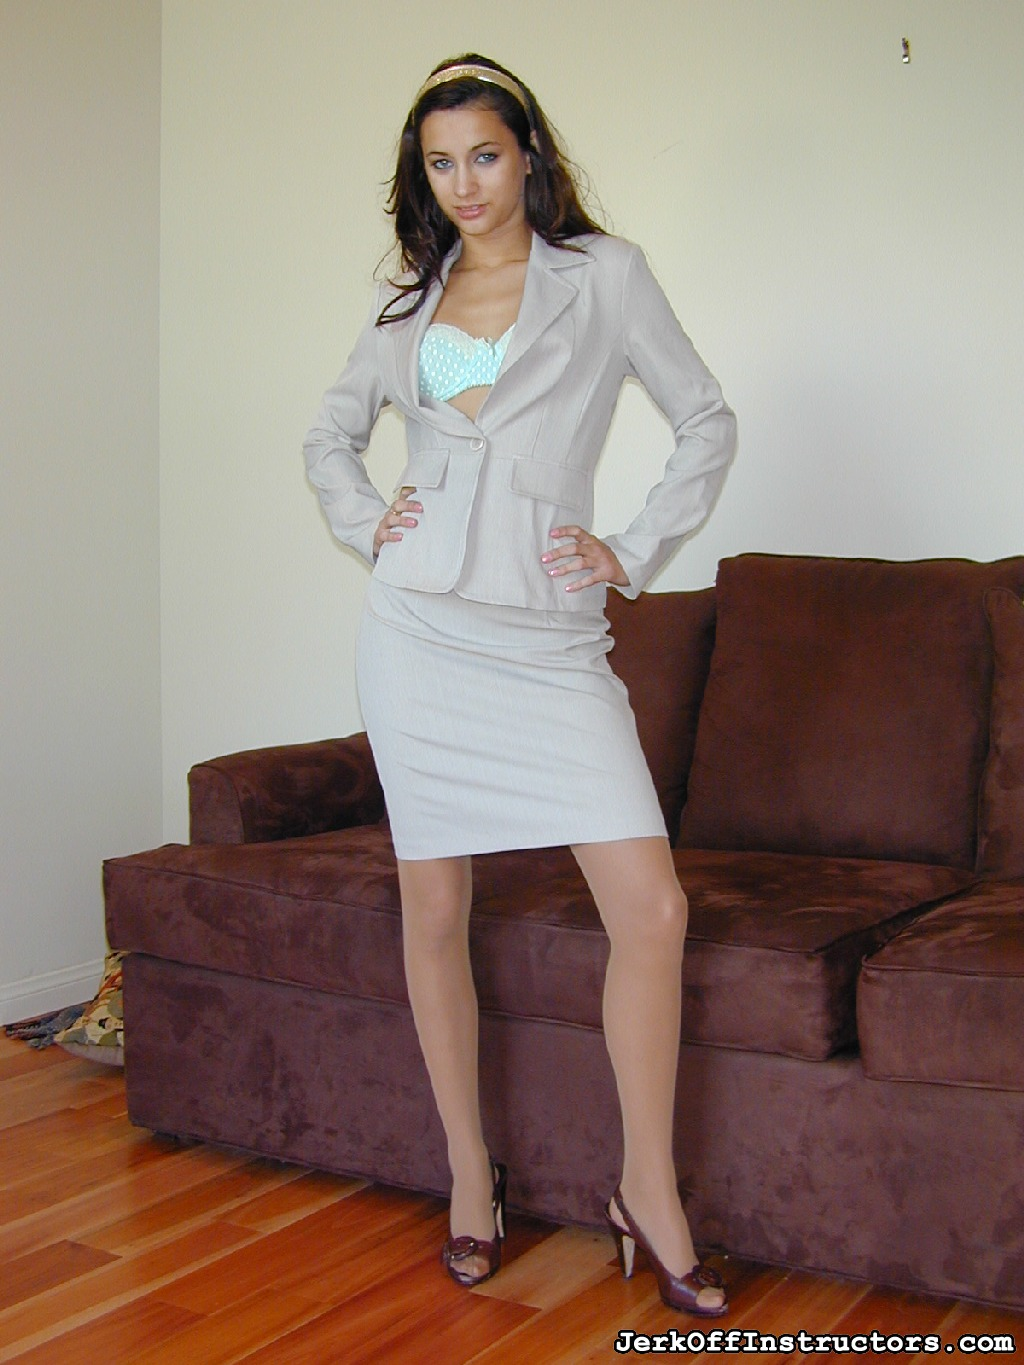 Georgia jones  suit. Georgia Jones' in a tight business suit, nude sheer to waist pantyhose with lots of sexual office games to set you off!